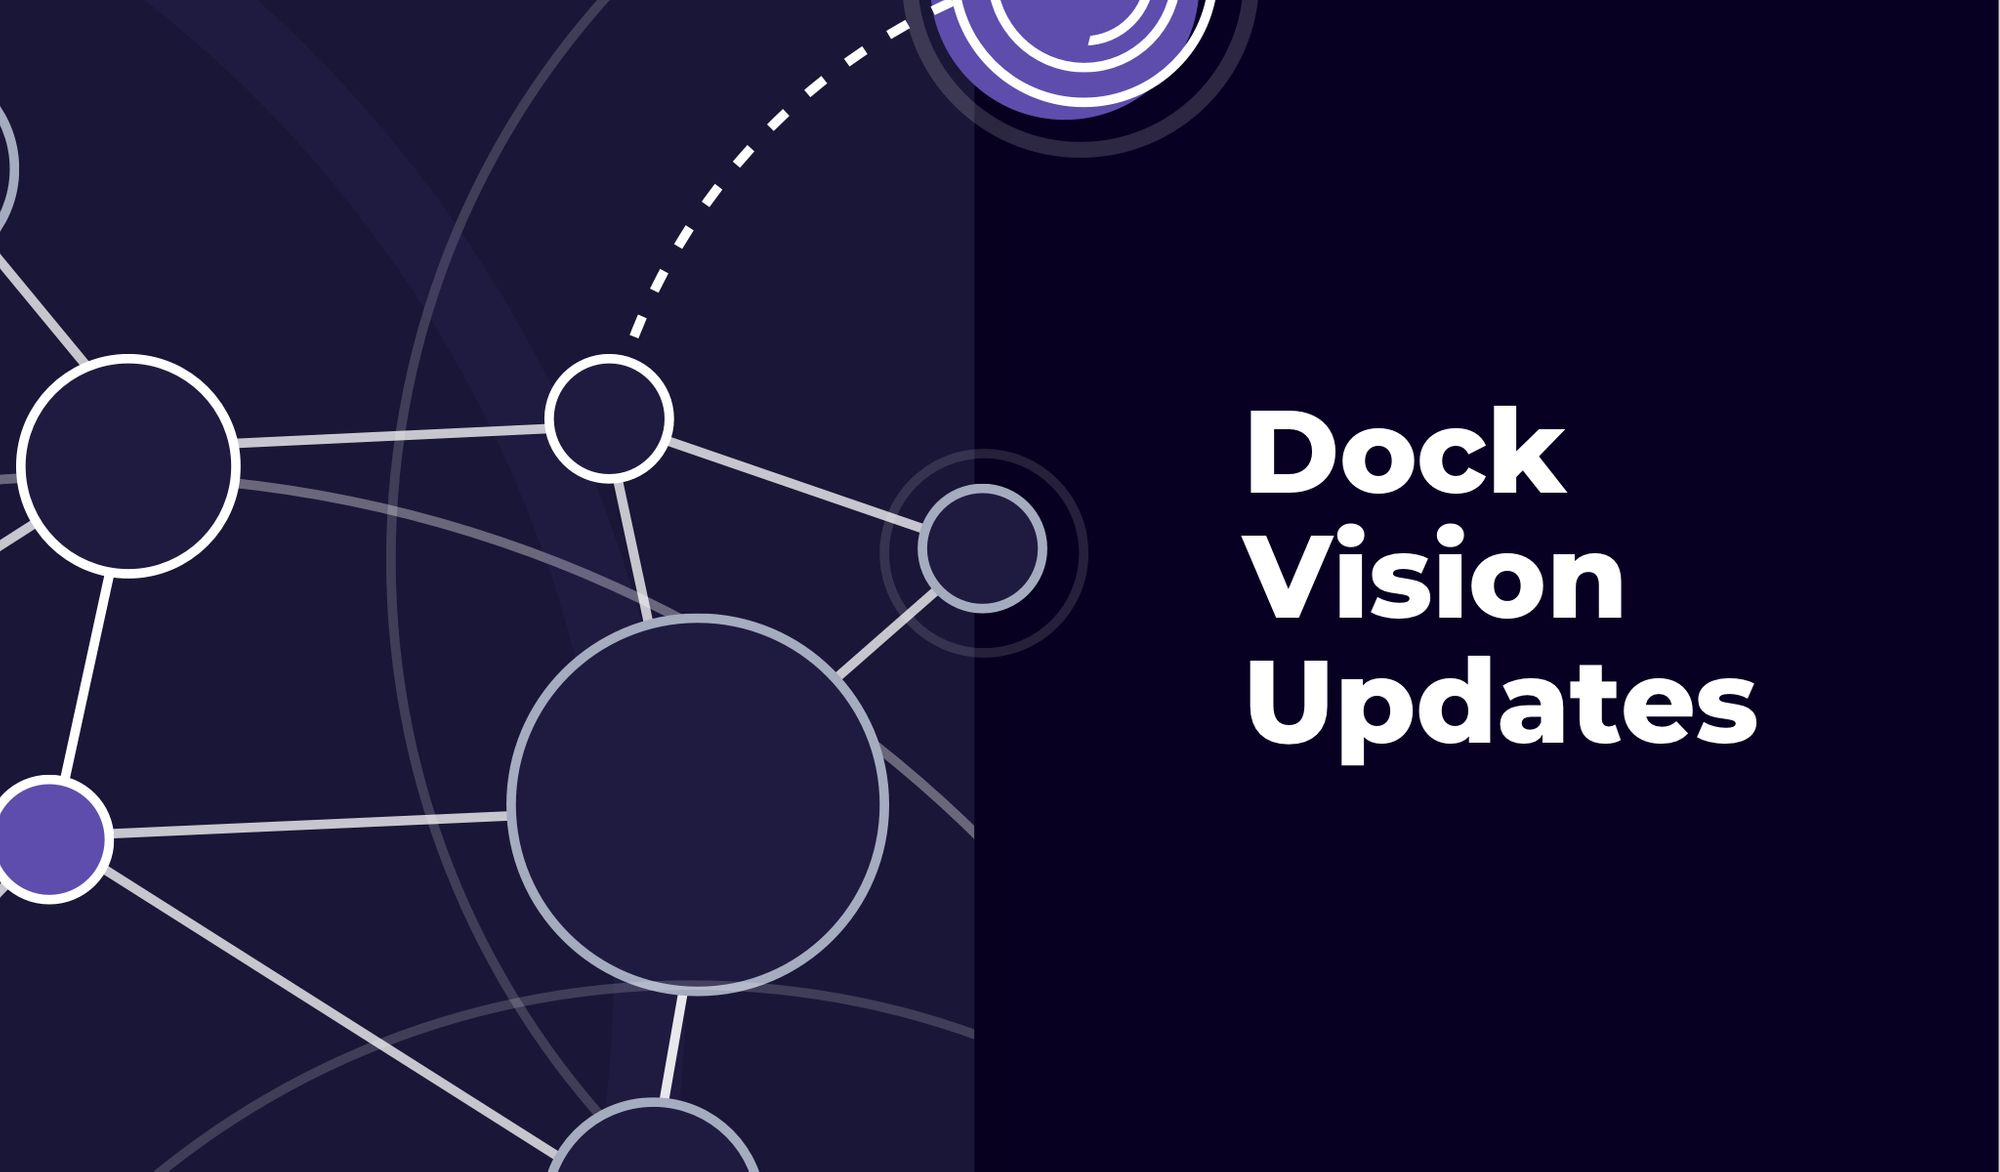 Dock Vision Update: Lightpaper, Roadmap & more